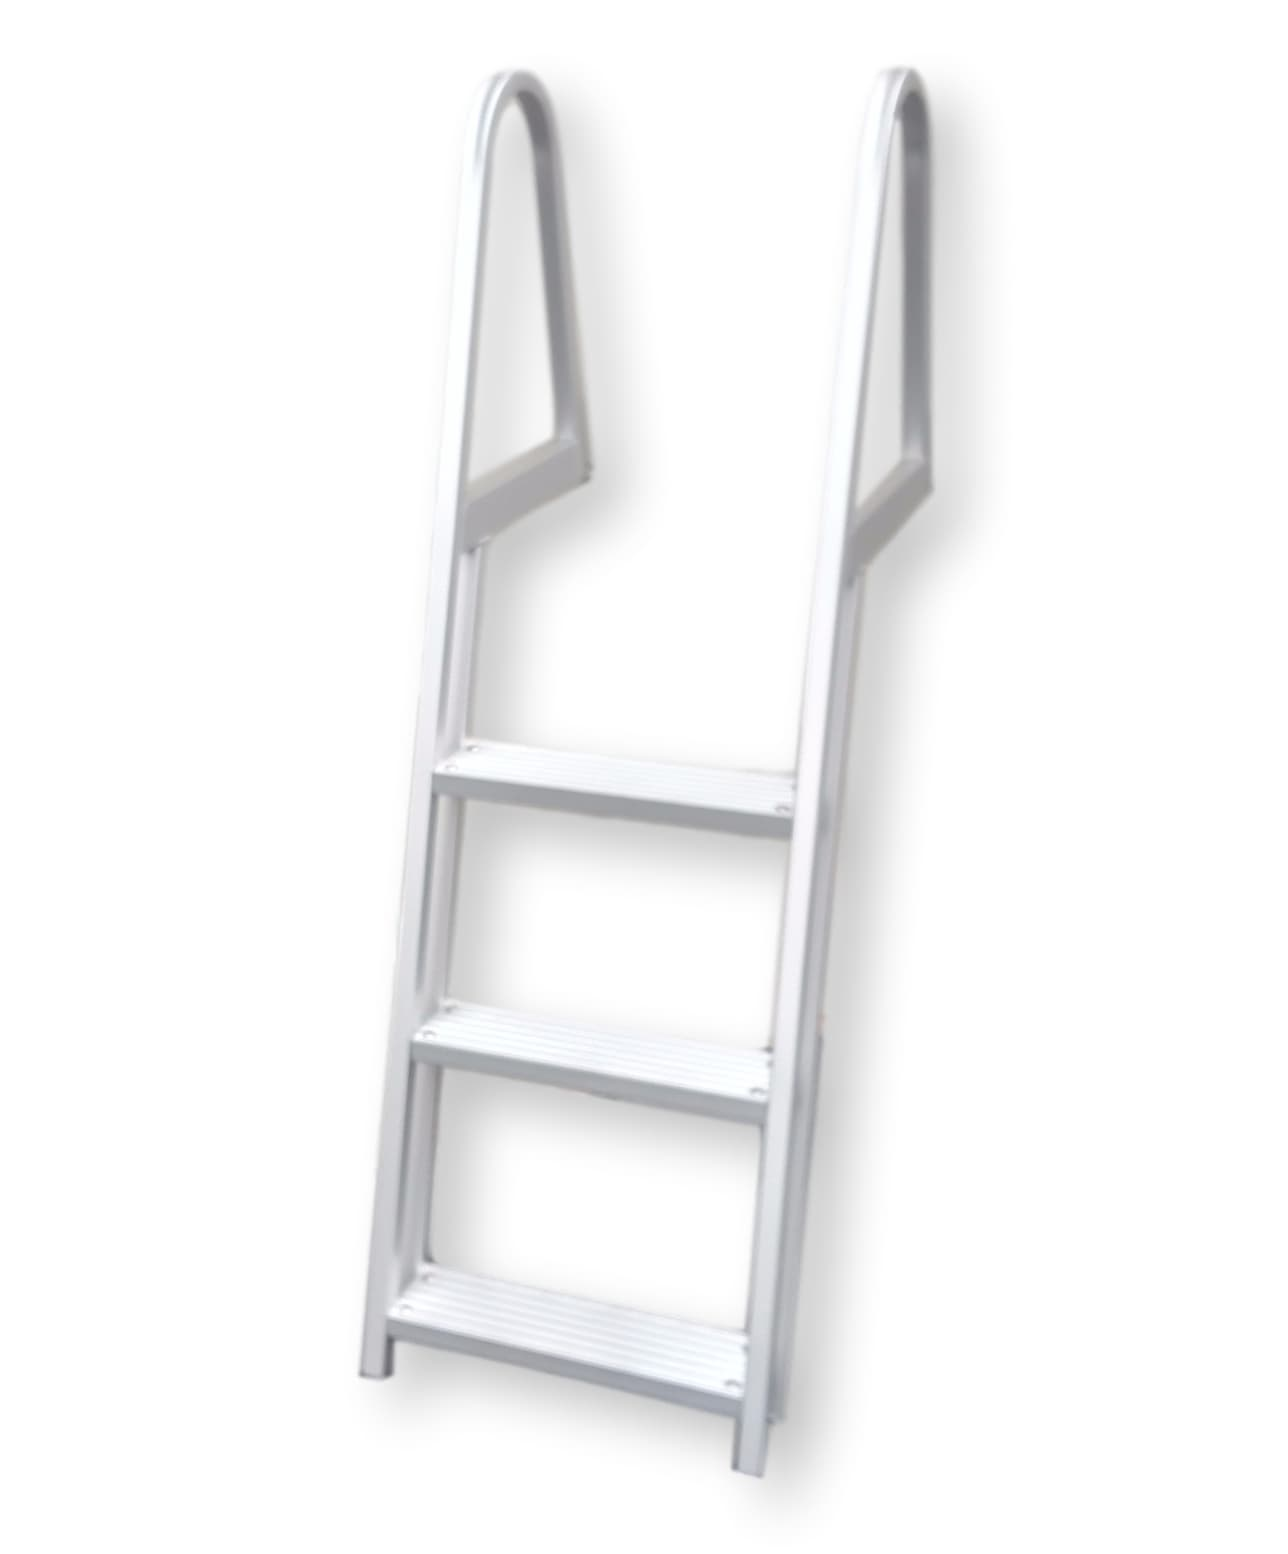 Anodized Aluminum Ladder